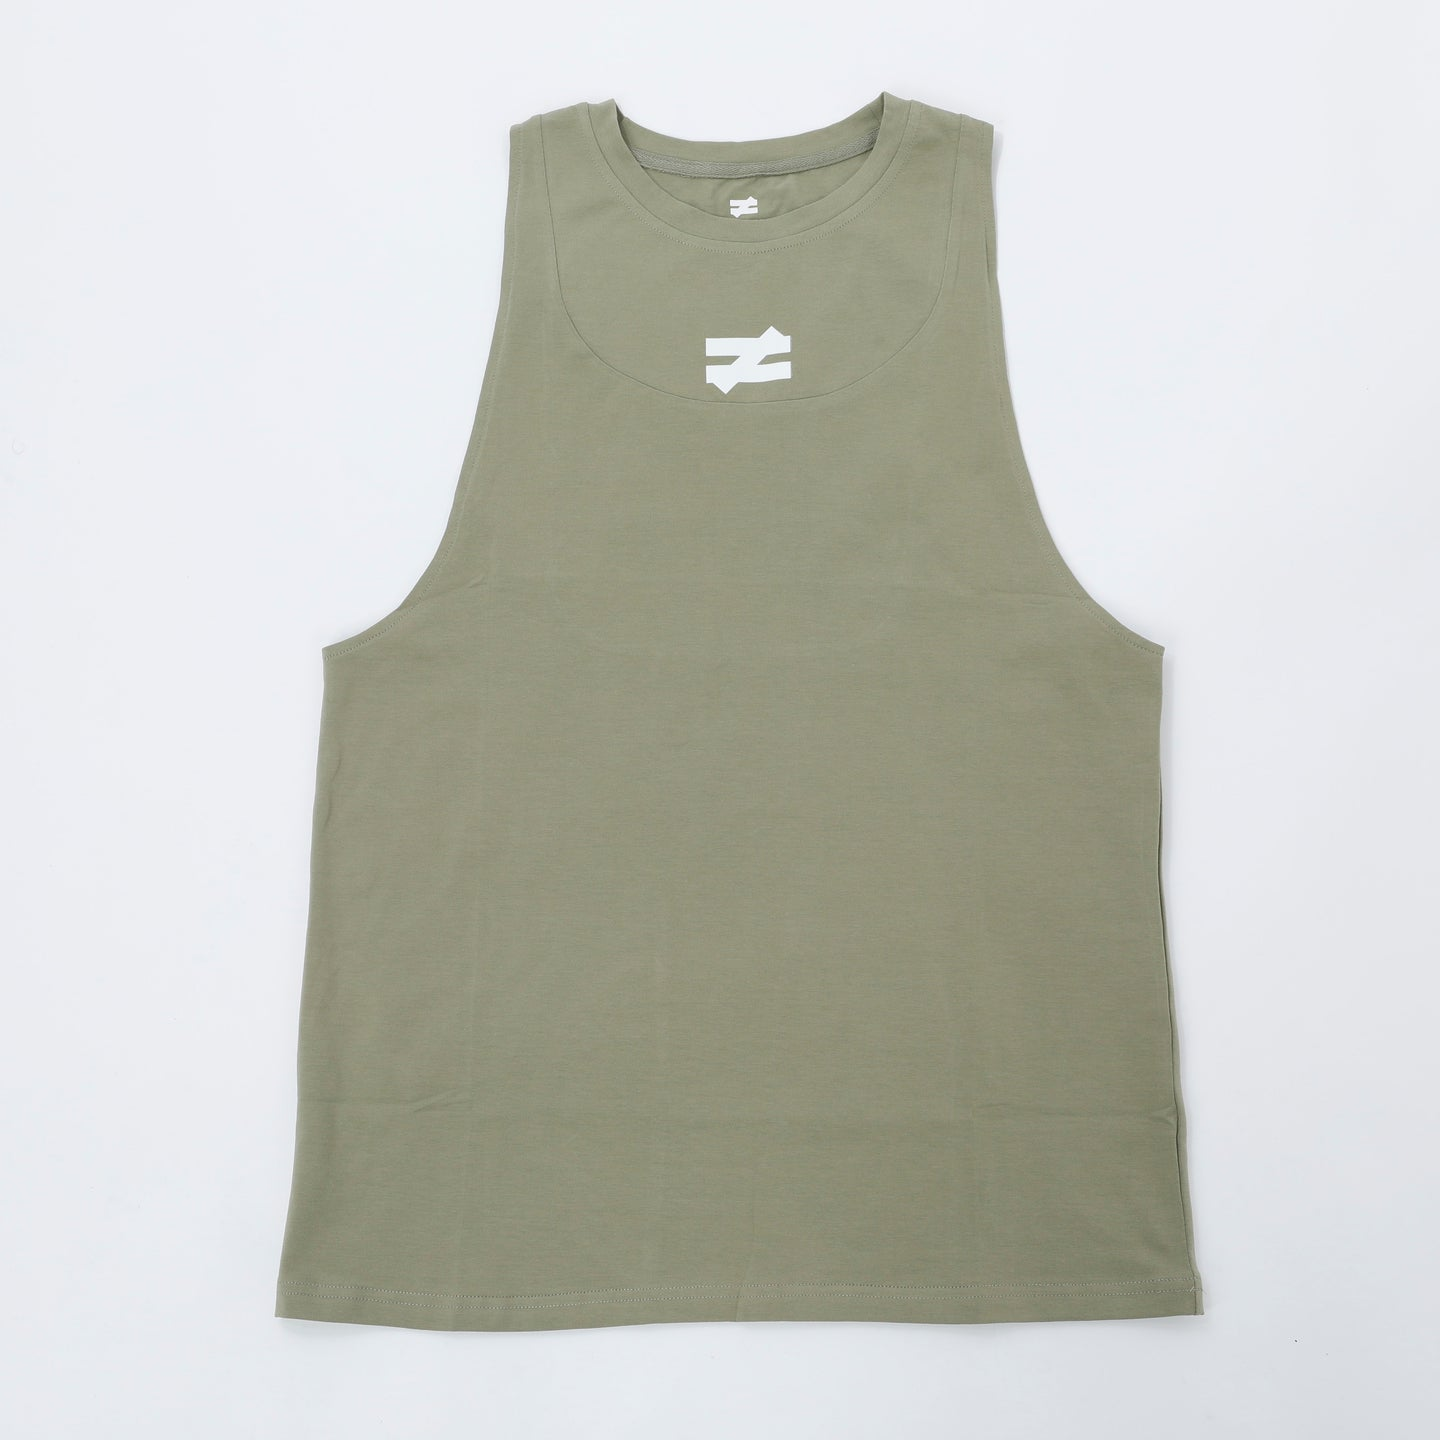 Zyphr Function Tank in Olive Green